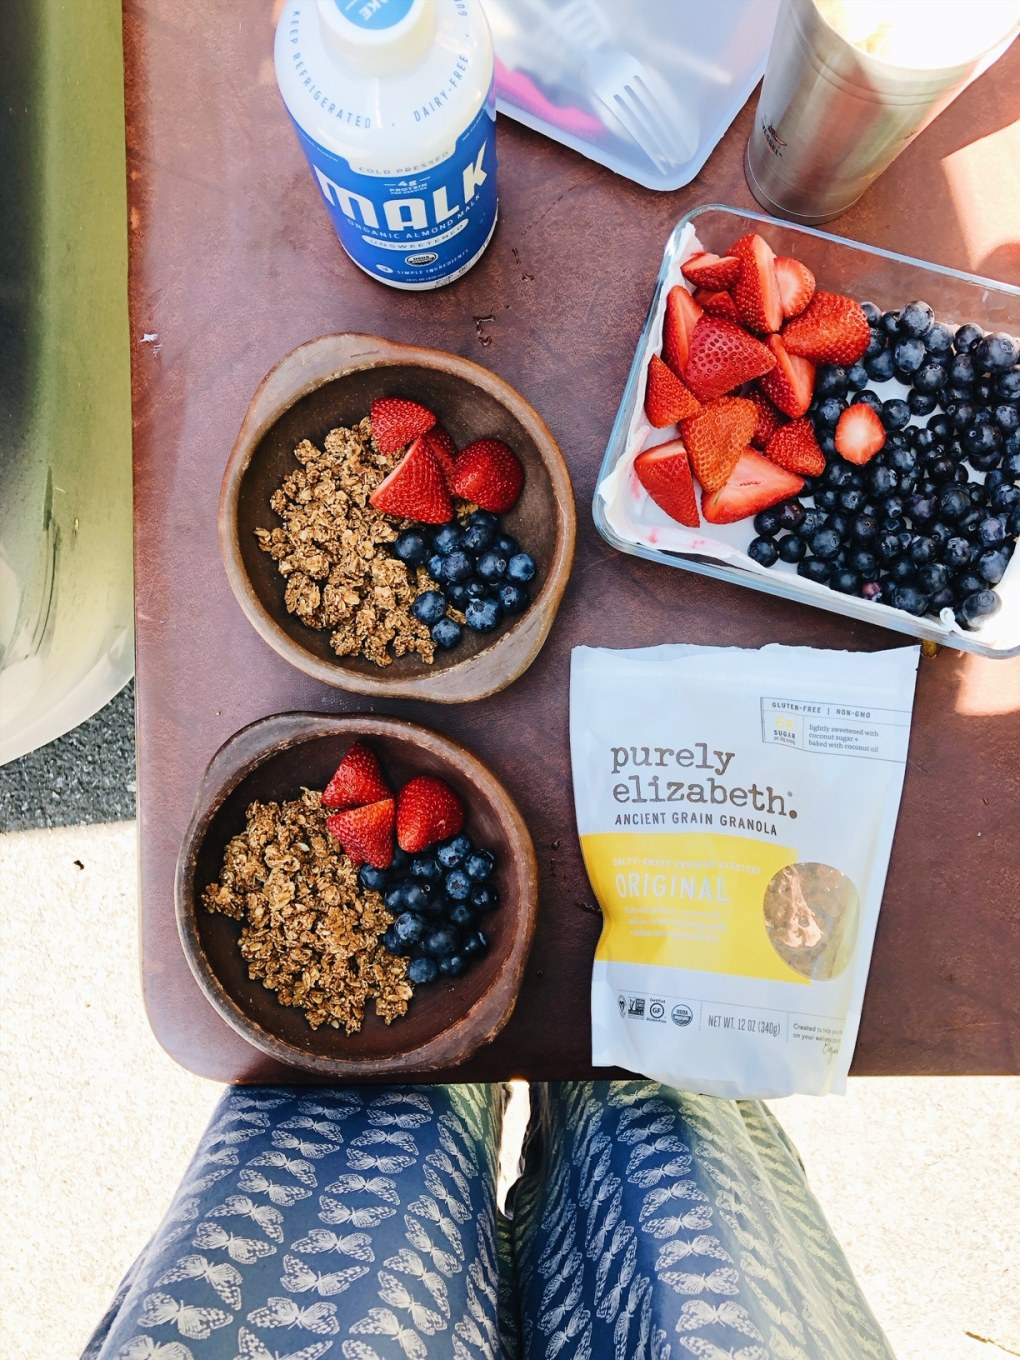 Granola and berries in two small brown bowls  on a brown folding table next to a bowl of berries and a bag of granola